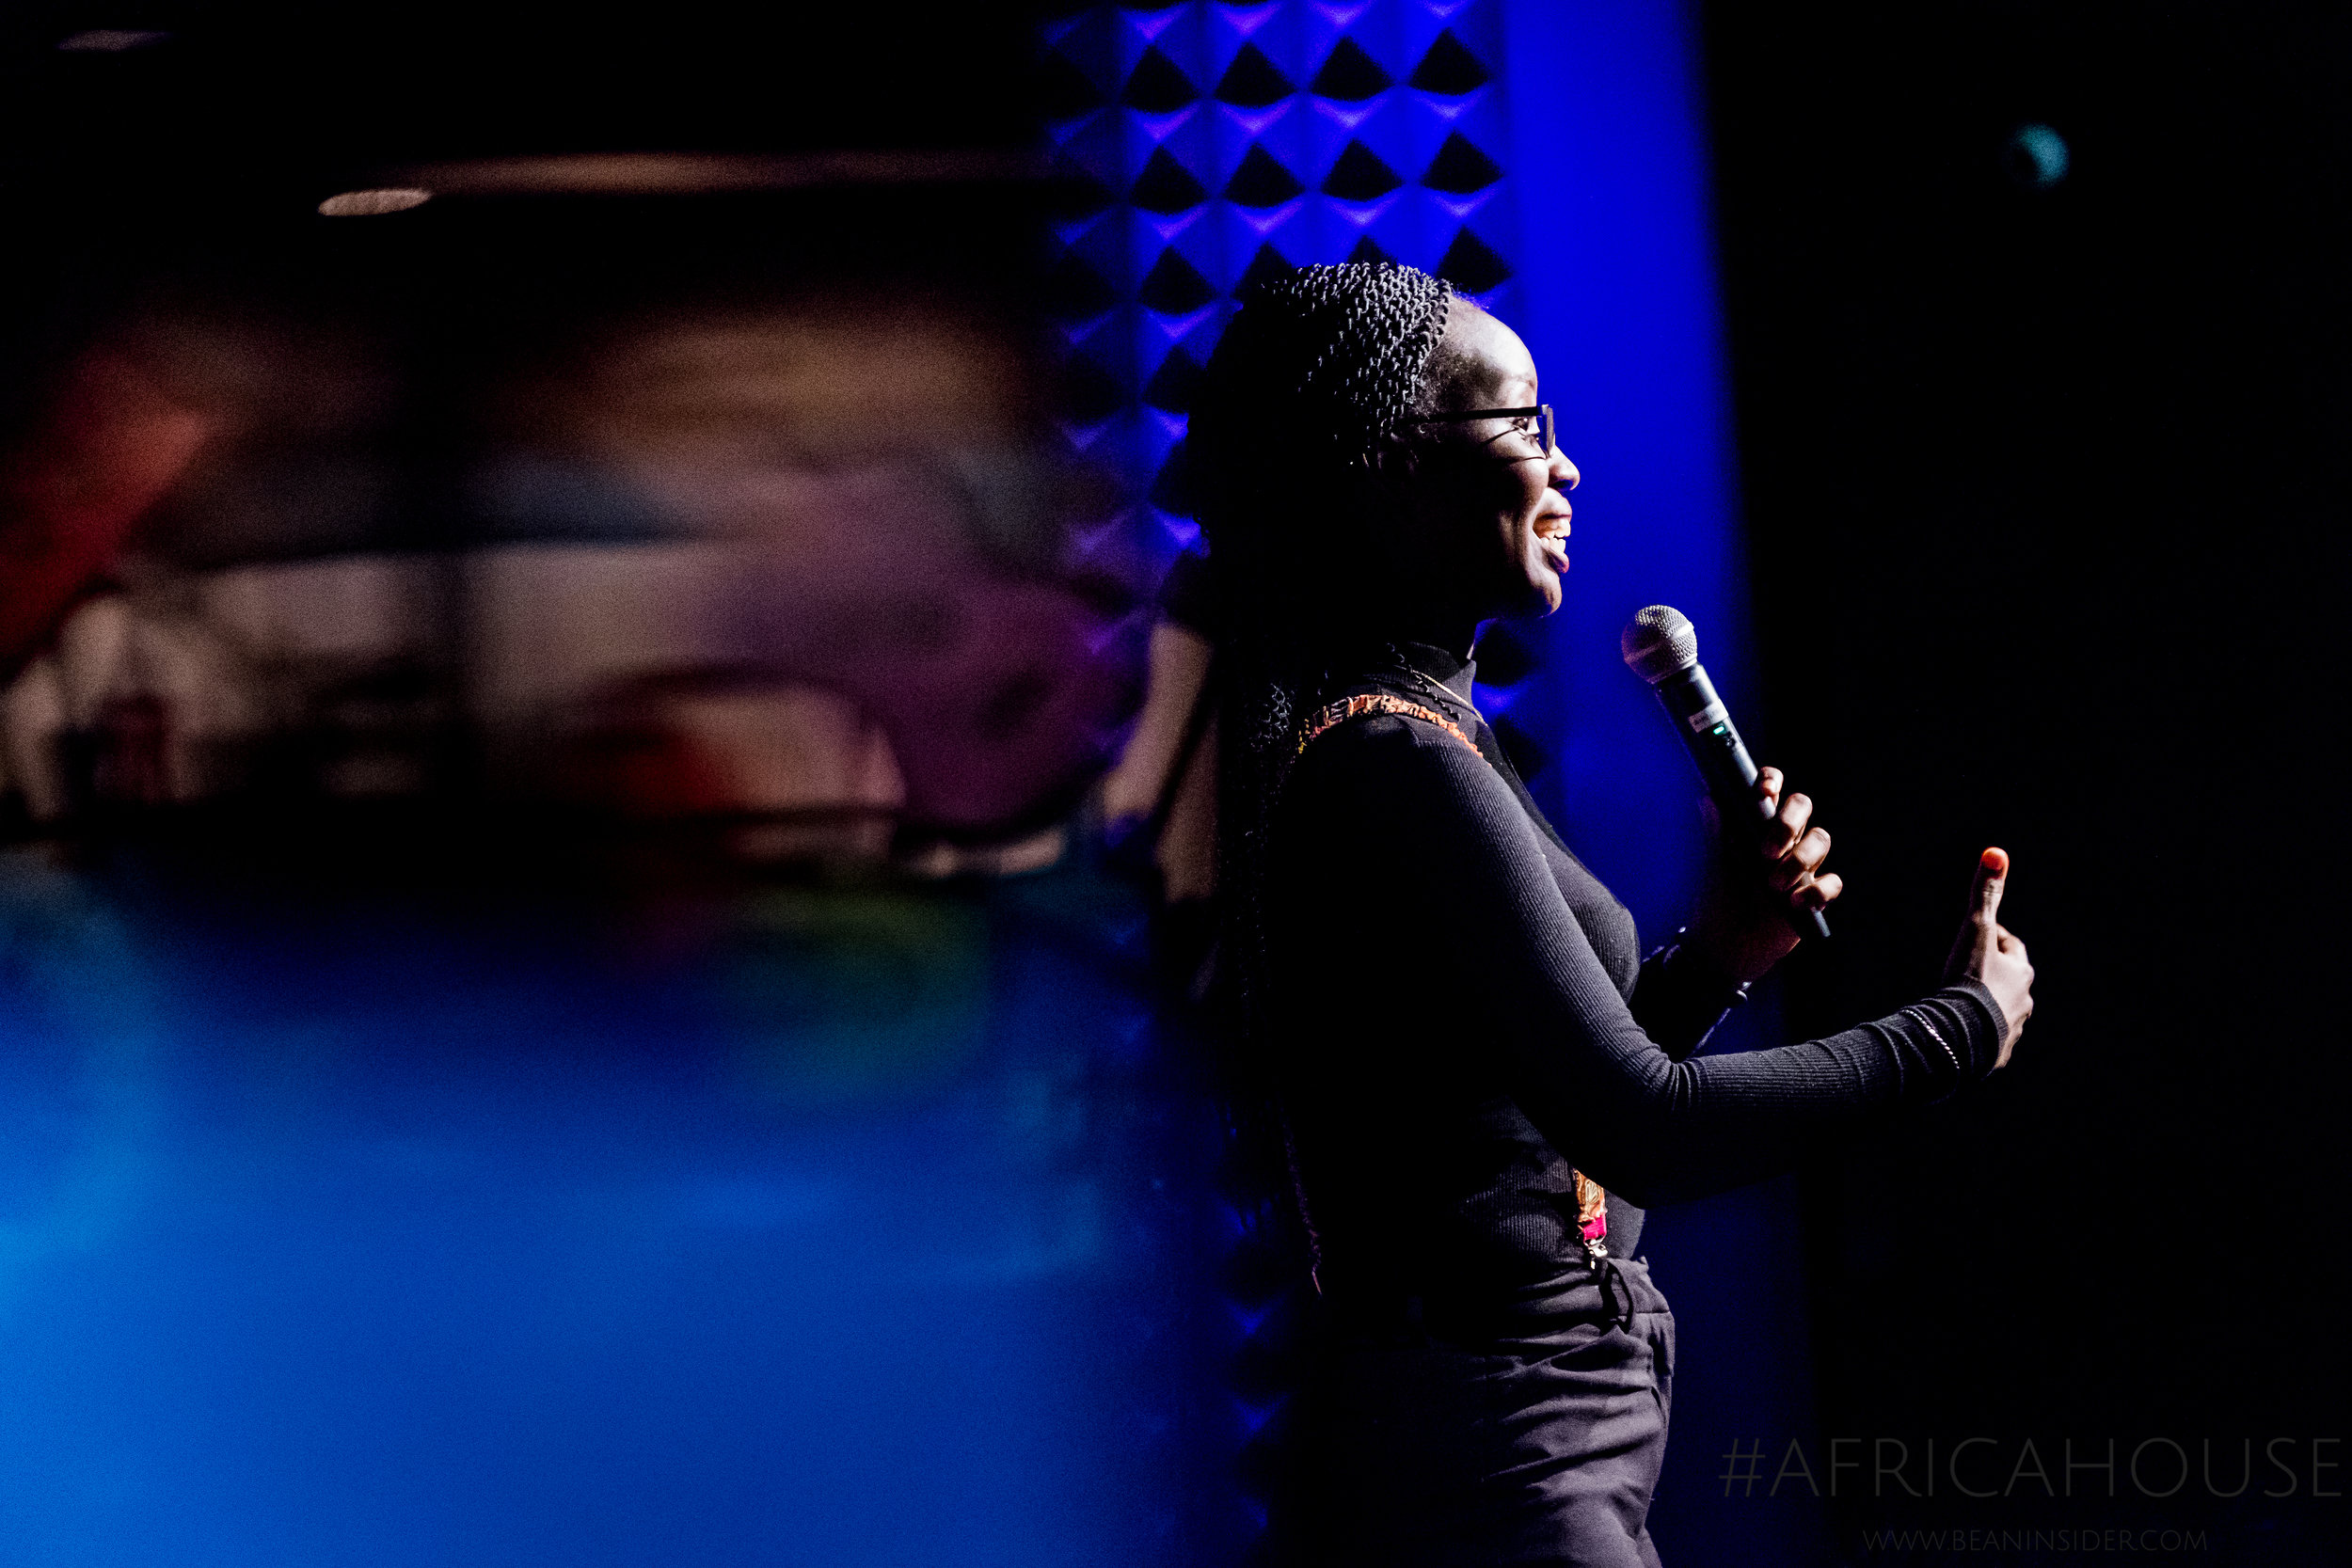 Brenda Katwesigye, CEO of Wazi Vision, pitches her social enterprise at the first ever Africa House event at 2018 SXSW in Austin, Texas. Photo credit: Adam Kealing